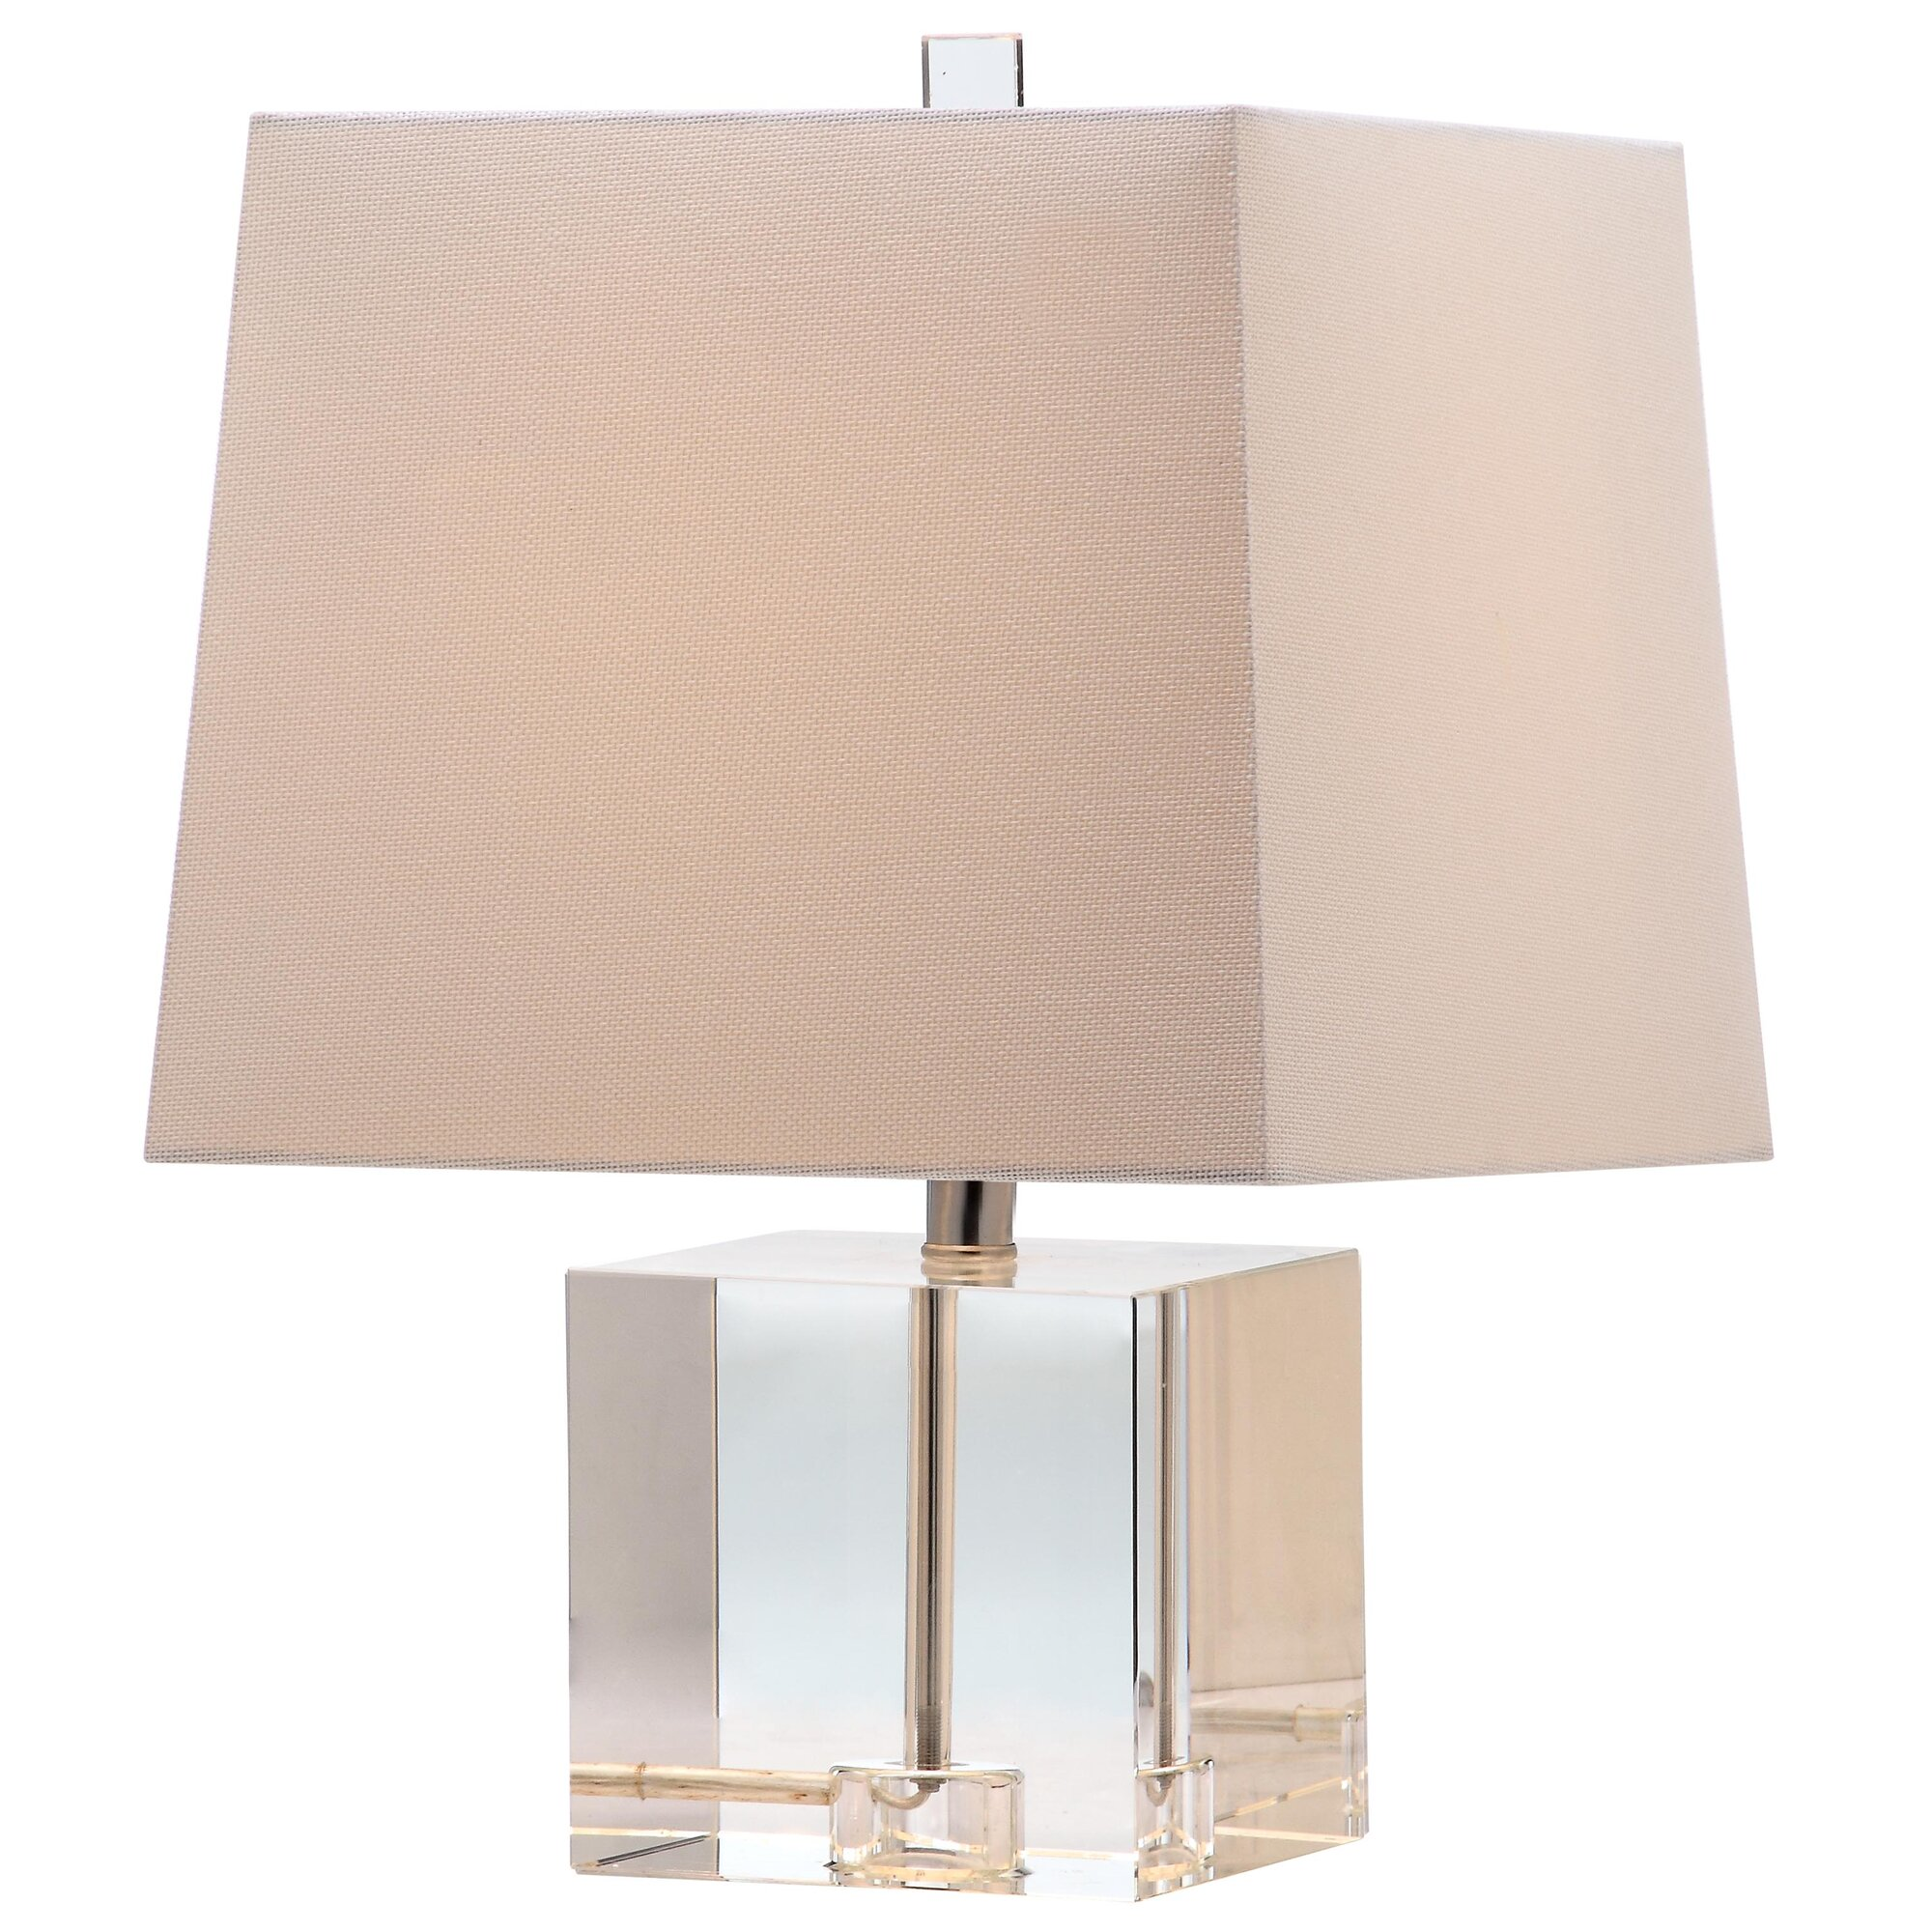 Safavieh mckinley 19 table lamp reviews wayfair for Table 19 review